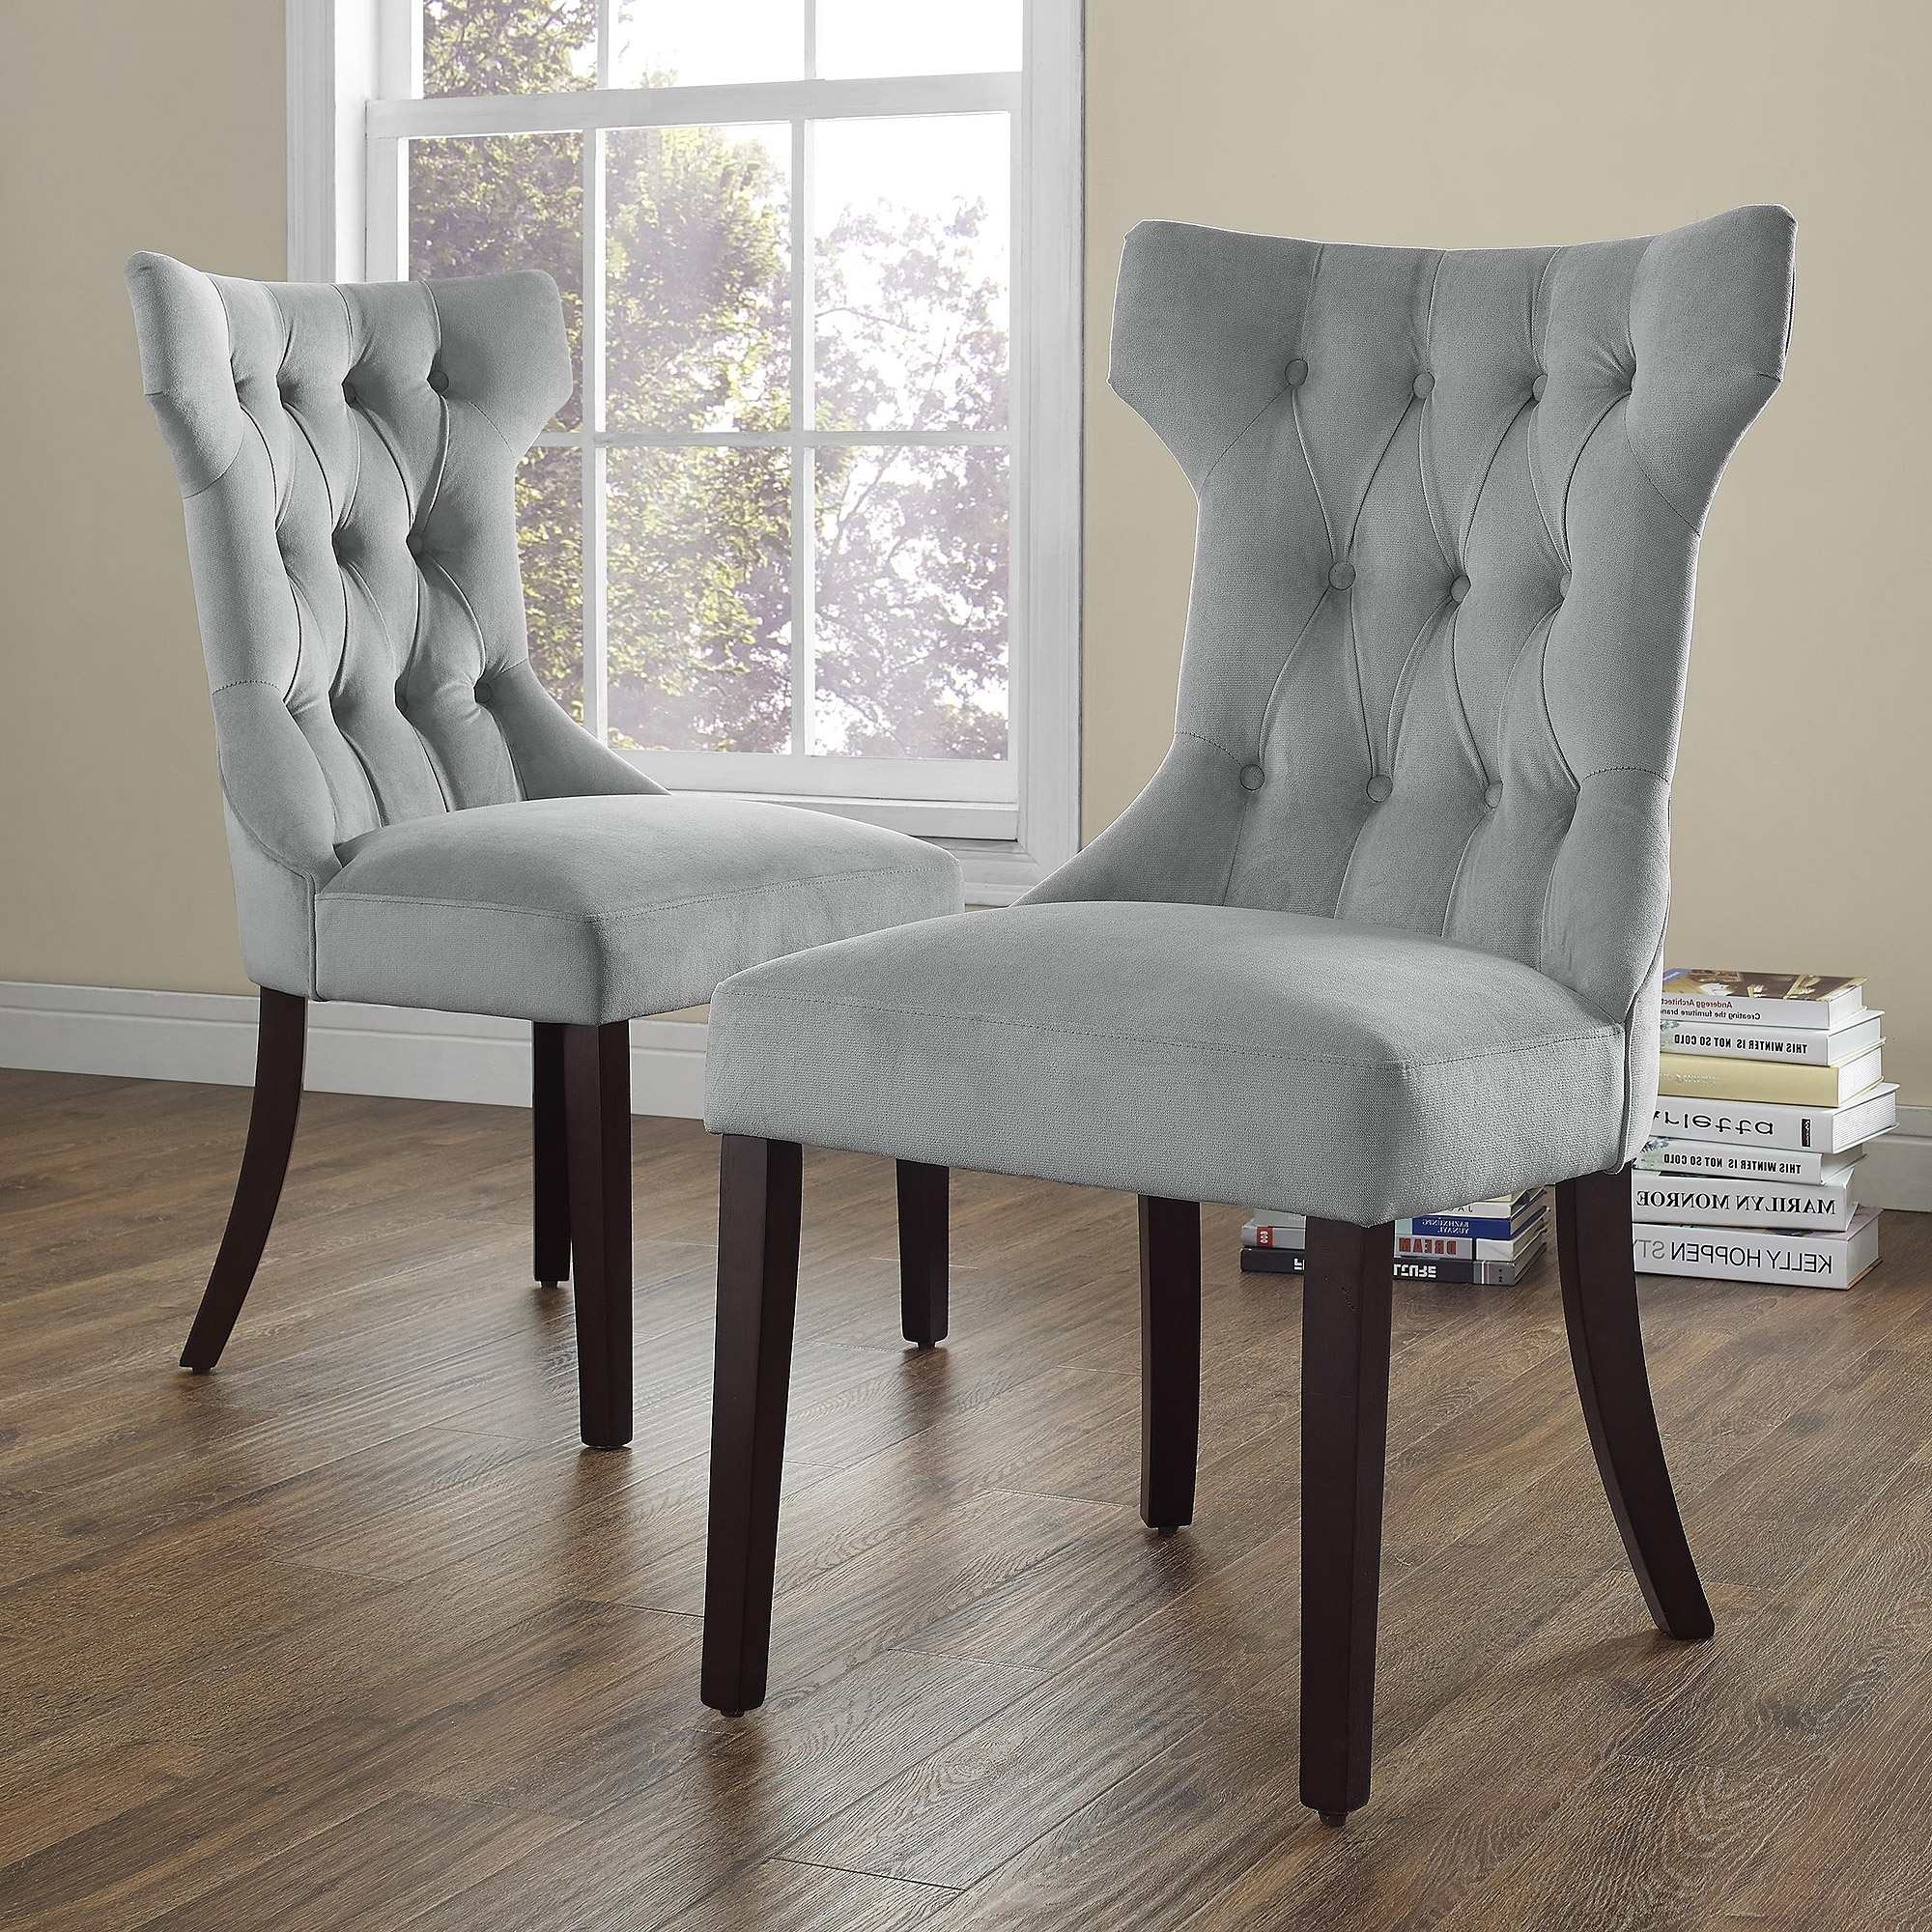 Dining Room Chairs within Most Recent Dorel Living Clairborne Tufted Upholestered Dining Chair, Set Of 2